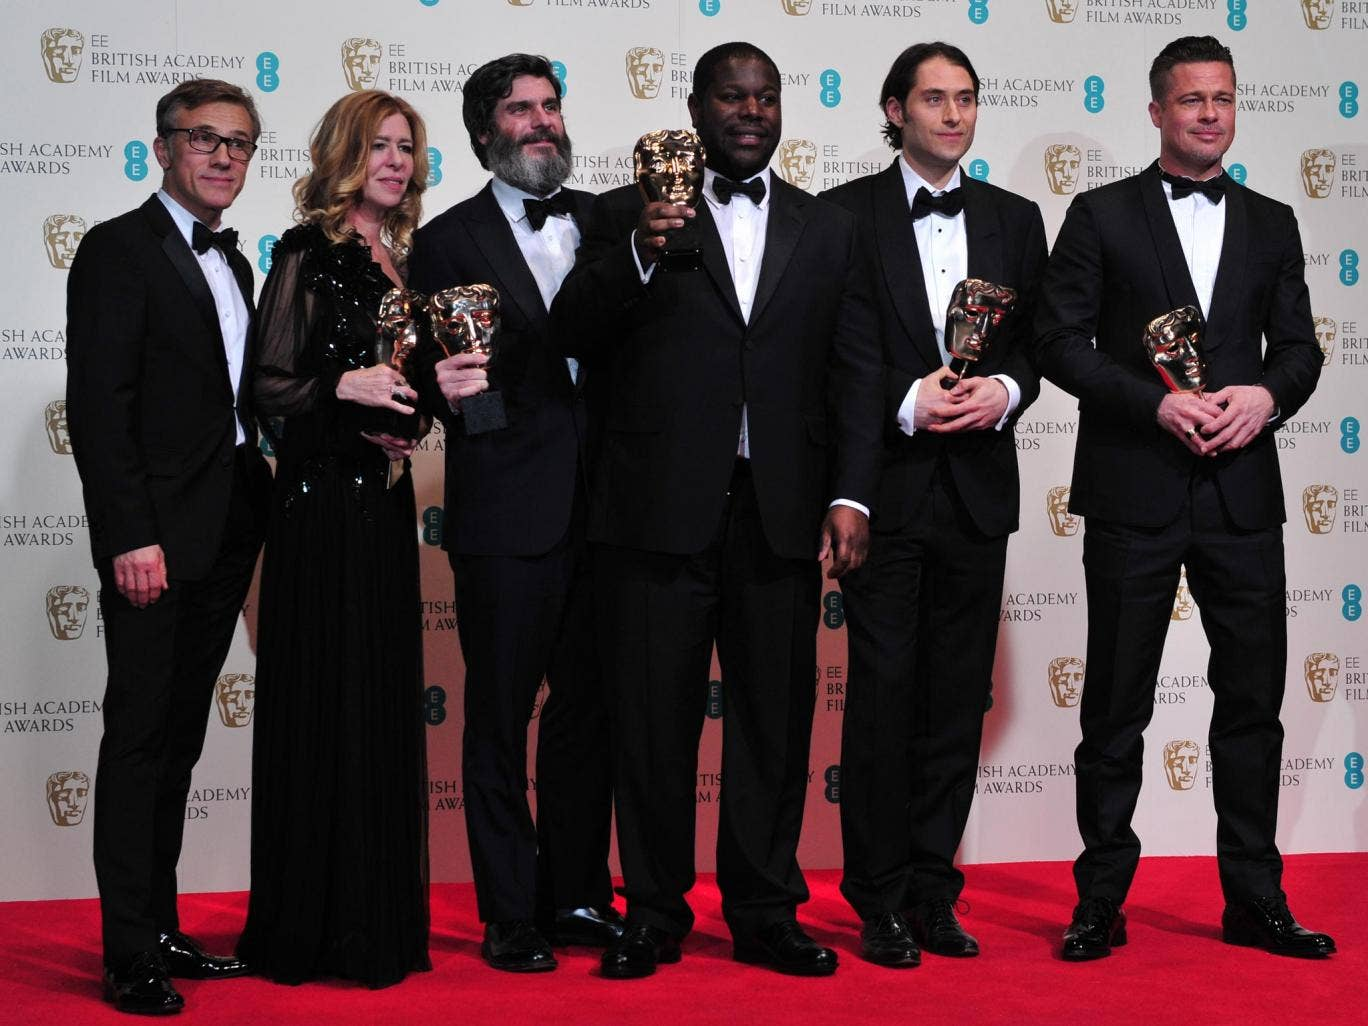 From left to right: Producer Dede Gardner, Producer Jeremy Kleiner, Director Steve McQueen, Producer Anthony Katagas and Brad Pitt pose with their awards for best film for '12 Years A Slave'